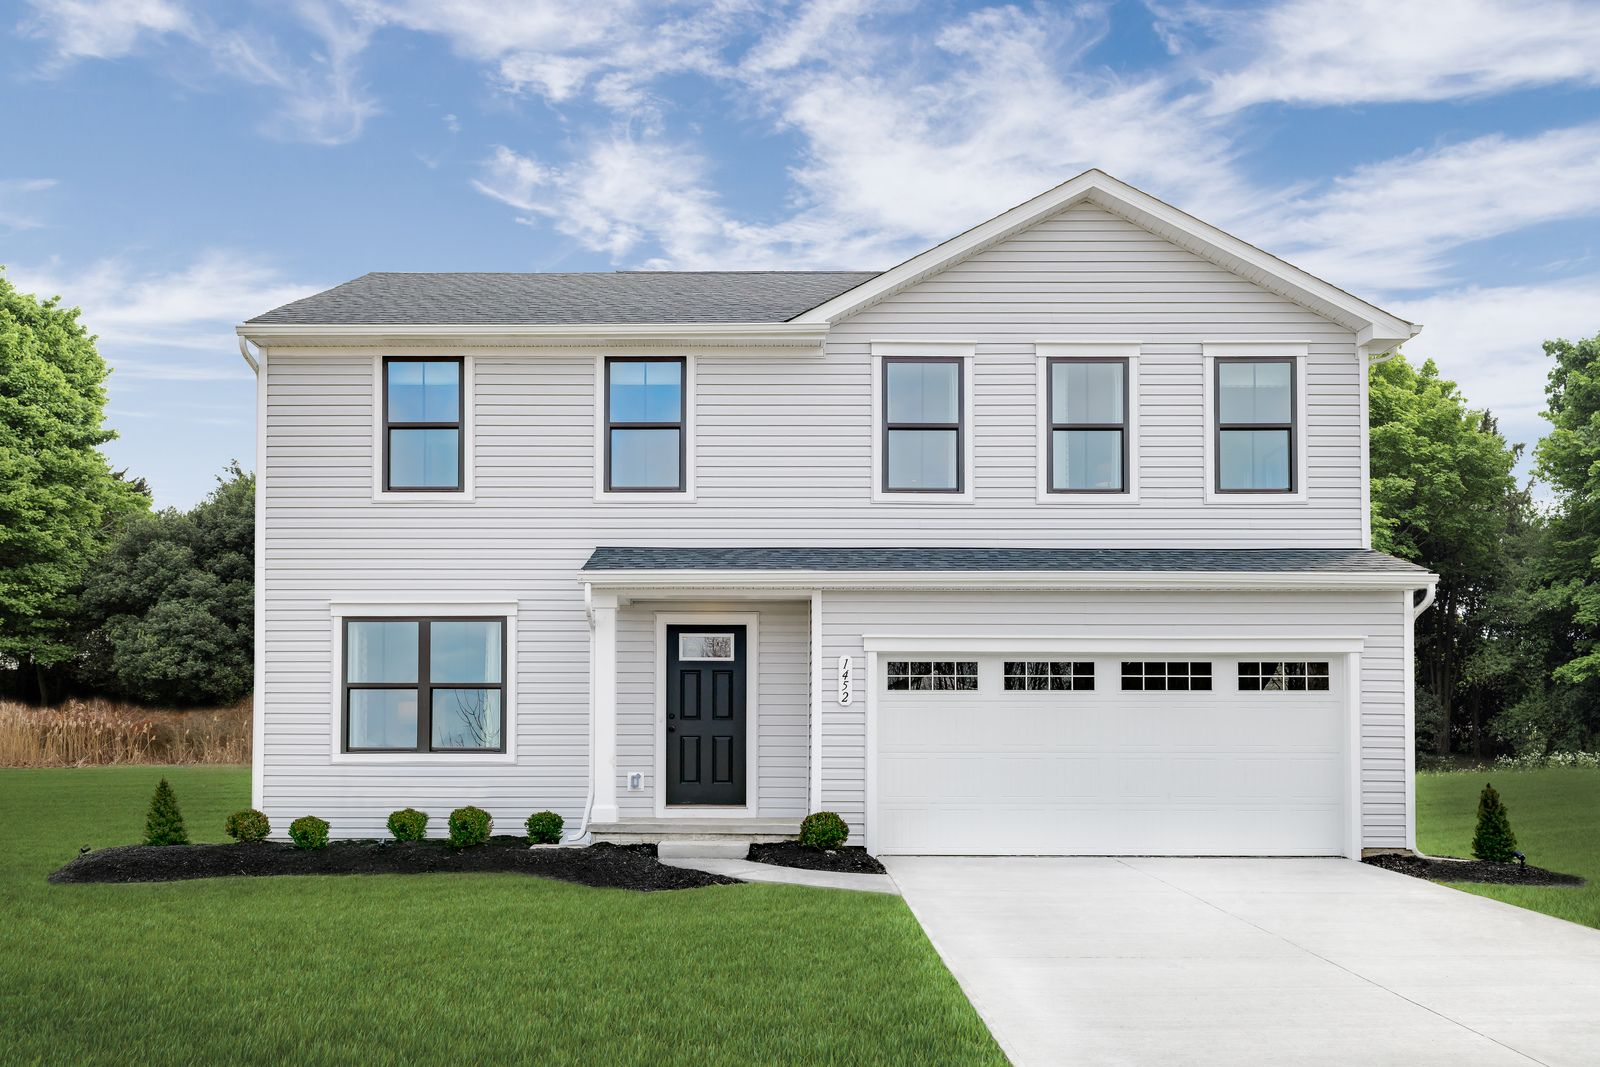 WELCOME HOME TO ALKIRE RUN:New open concept homes w/ the space you need in Grove City—2-car garages, full basements w/ little to no money down. Near I-270 & 71, from mid $200s.Click here to schedule your visit today!